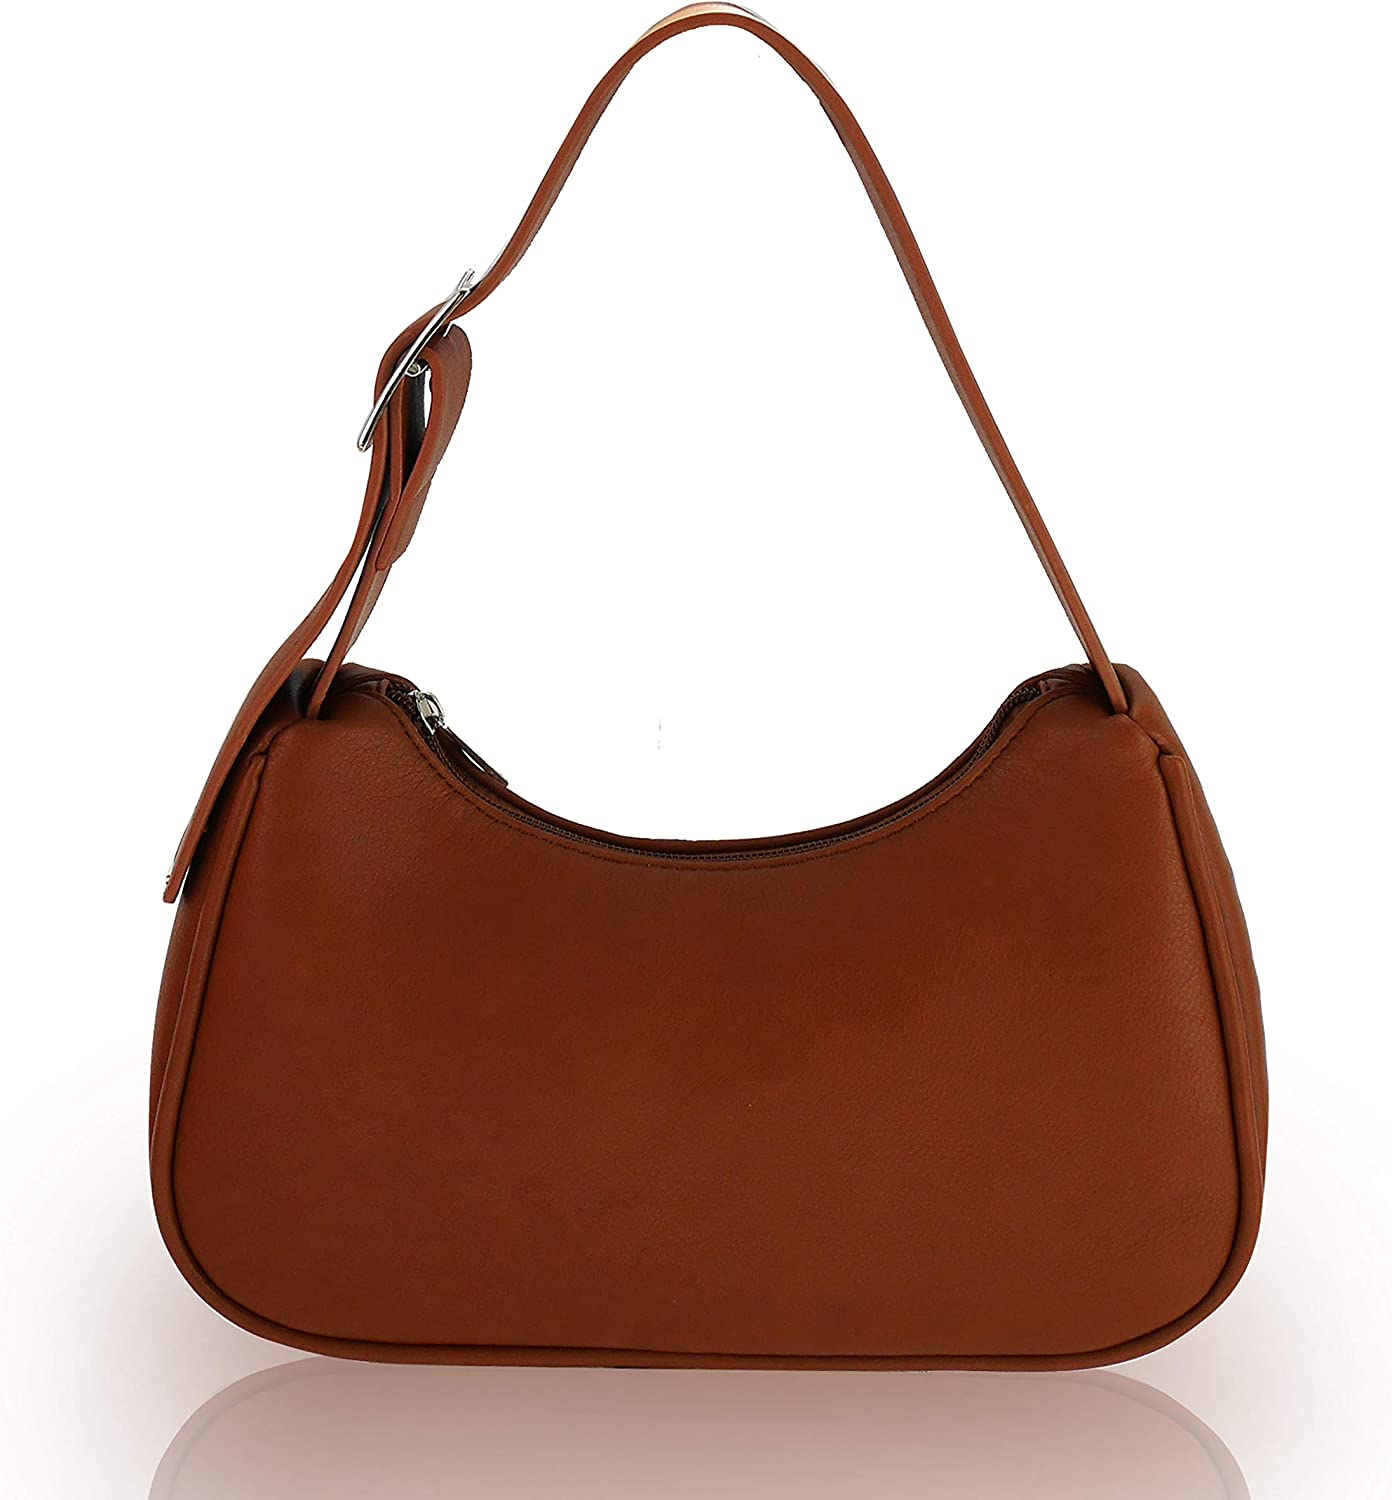 Small Shoulder Bags for Women Faux Leather Clutch Handbags,Small Hobo Bag